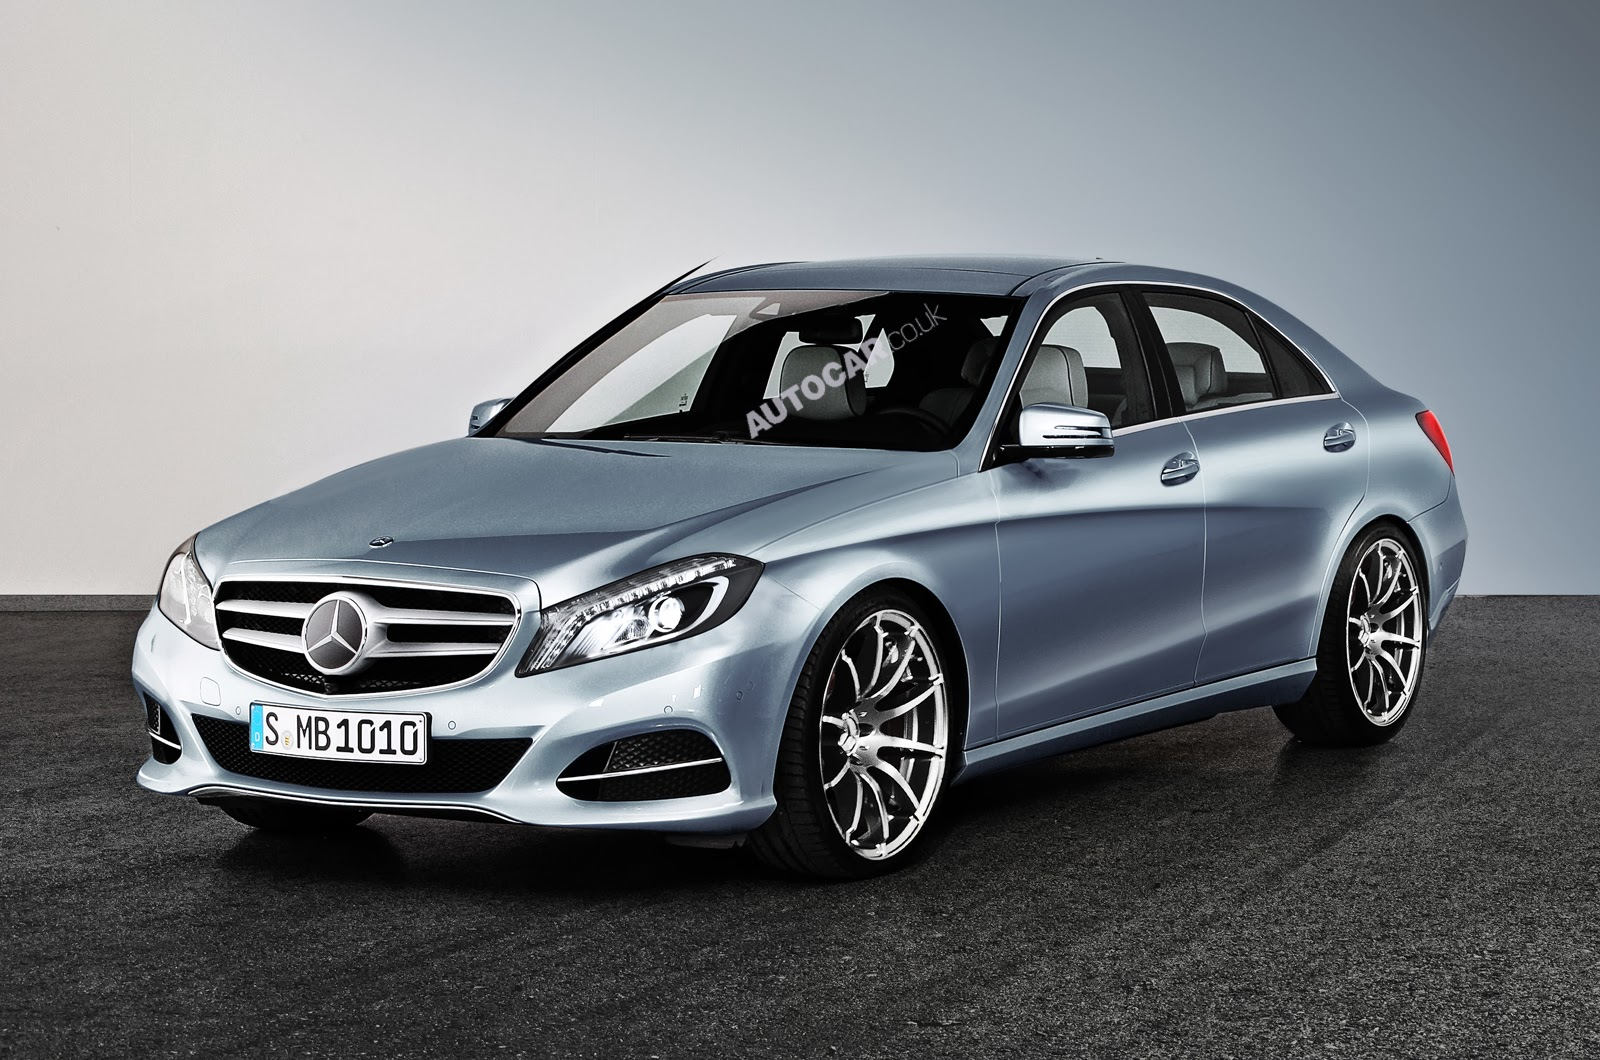 Prices of Mercedes Benz Cars in Nigeria